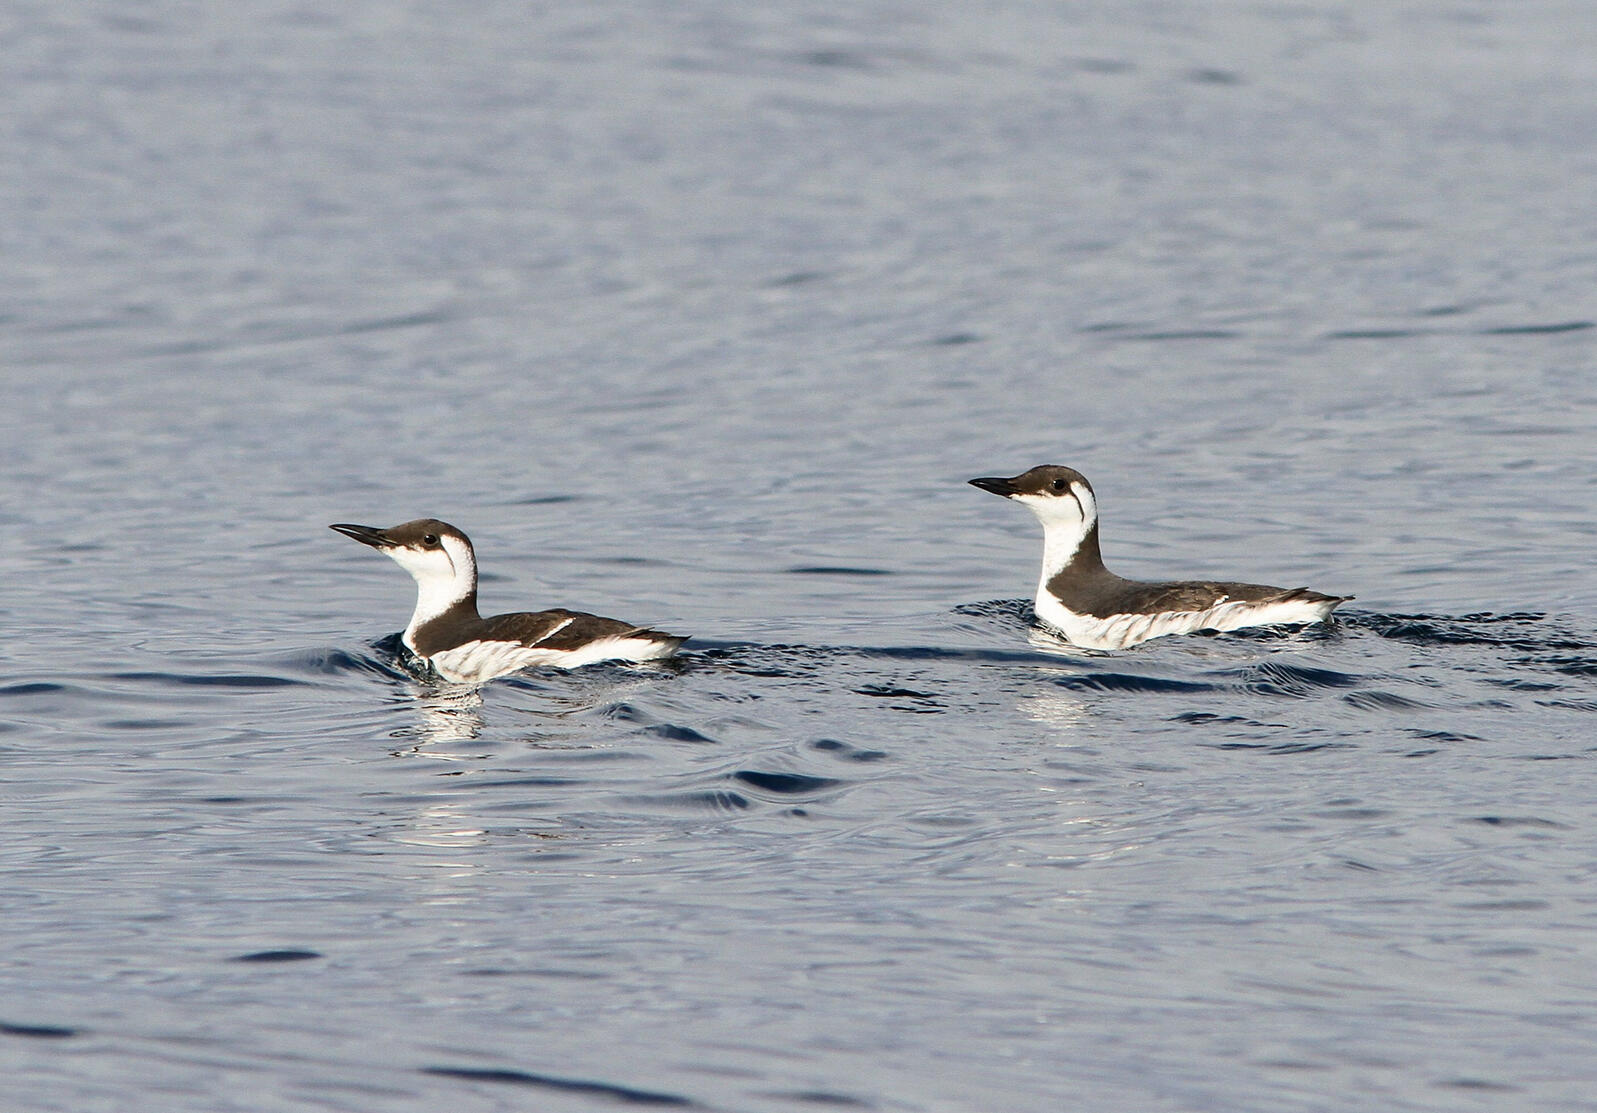 Common Murres. Trish Gussler/Flickr (CC BY NC ND 2.0)